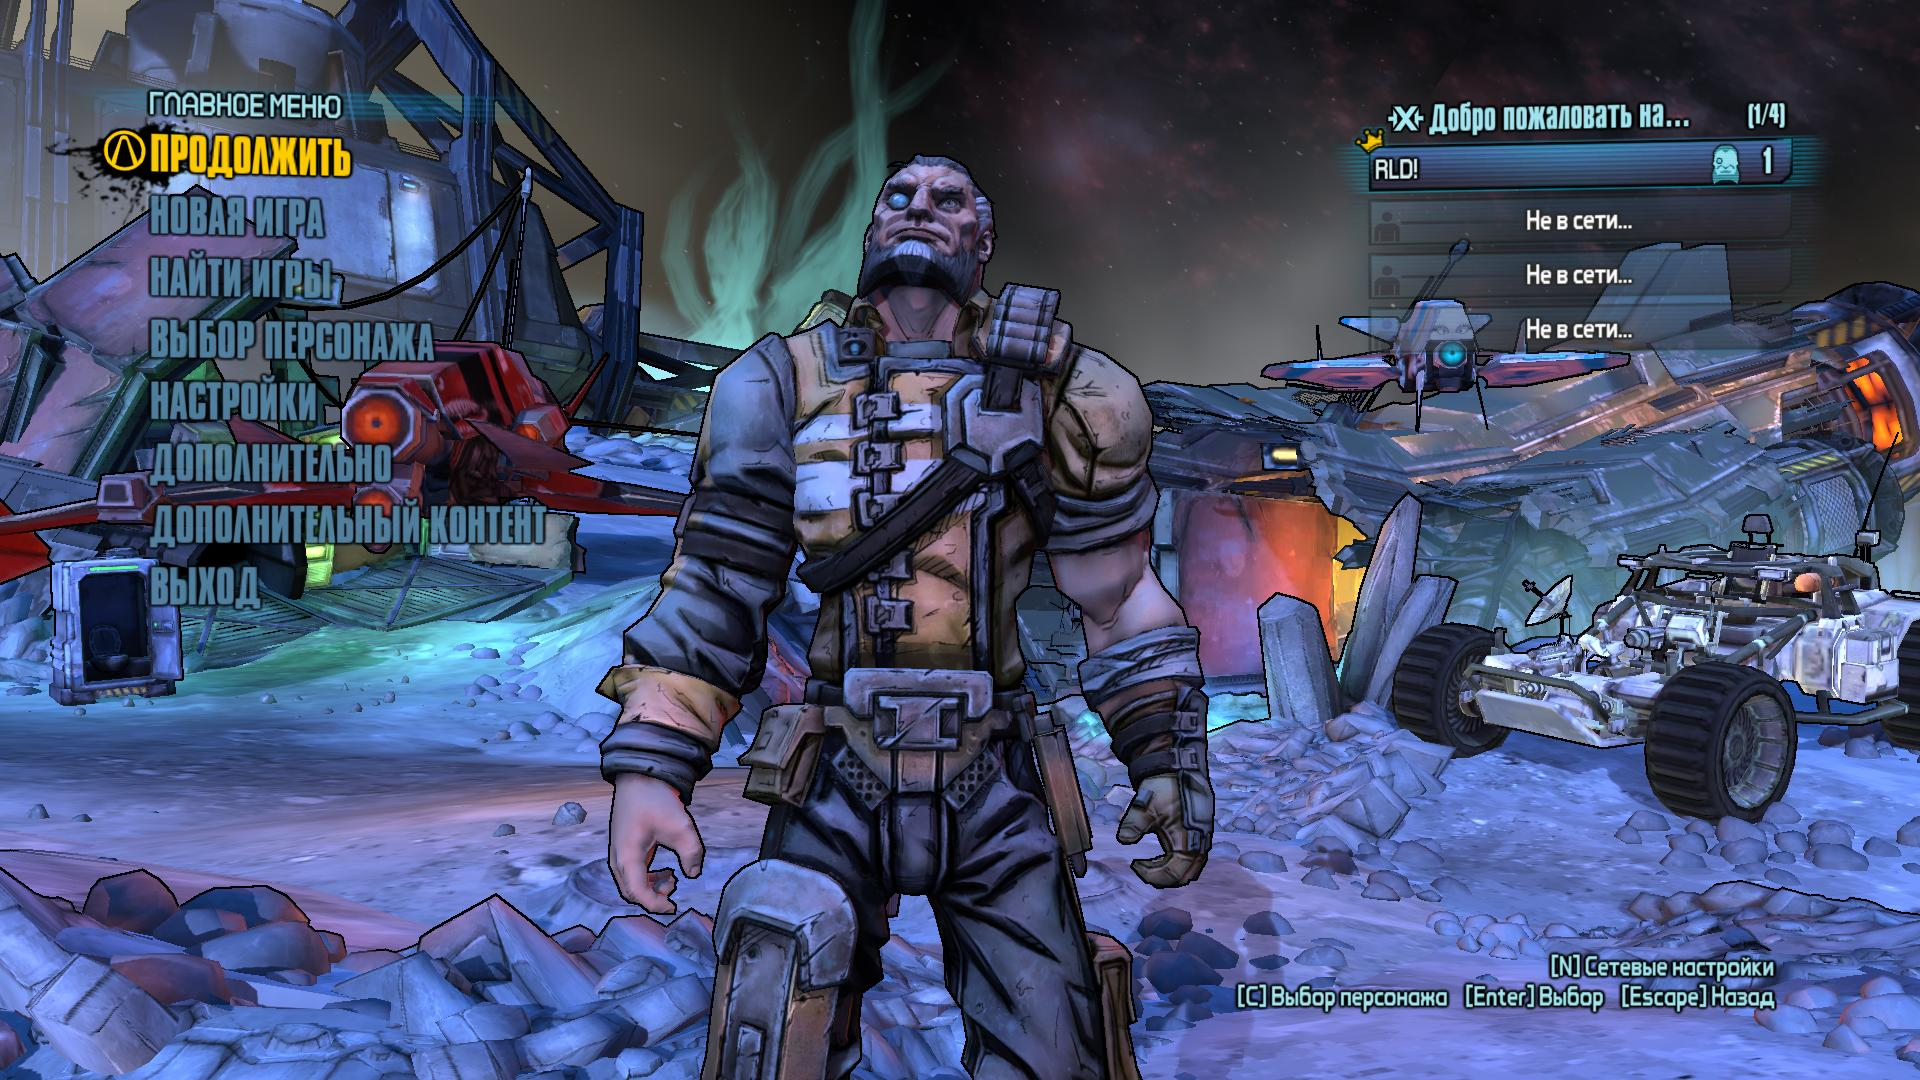 Borderlands: The Pre-Sequel [v 1.0.7 + 6 DLC] (2014) PC | RePack by Mizantrop1337 - Скриншот 3